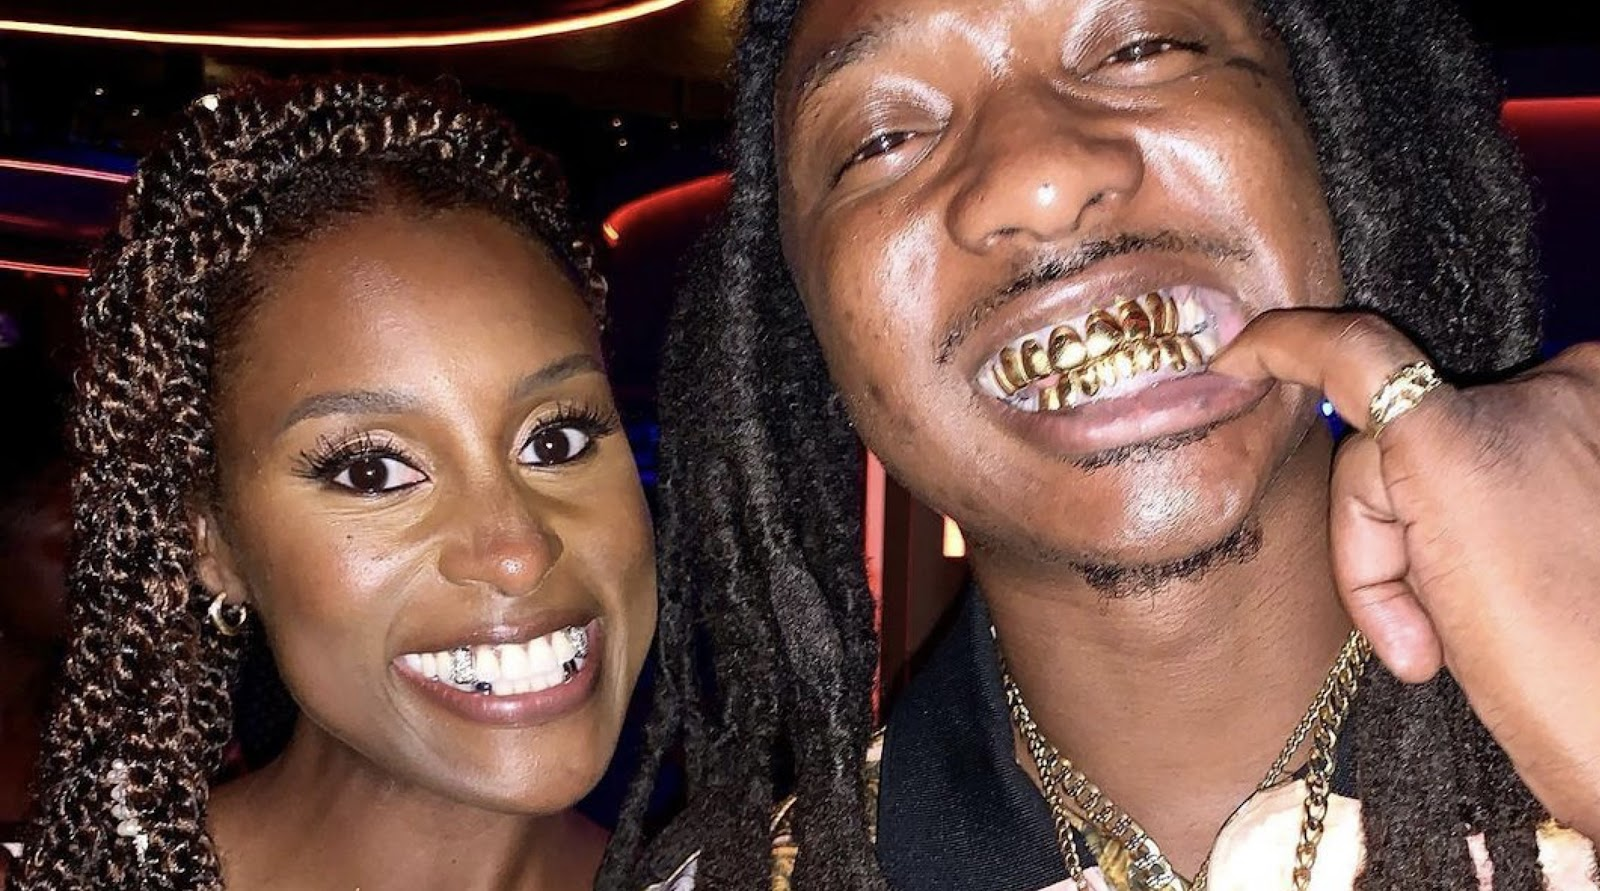 The source |  Issa Rae gets custom grillz for her wedding day